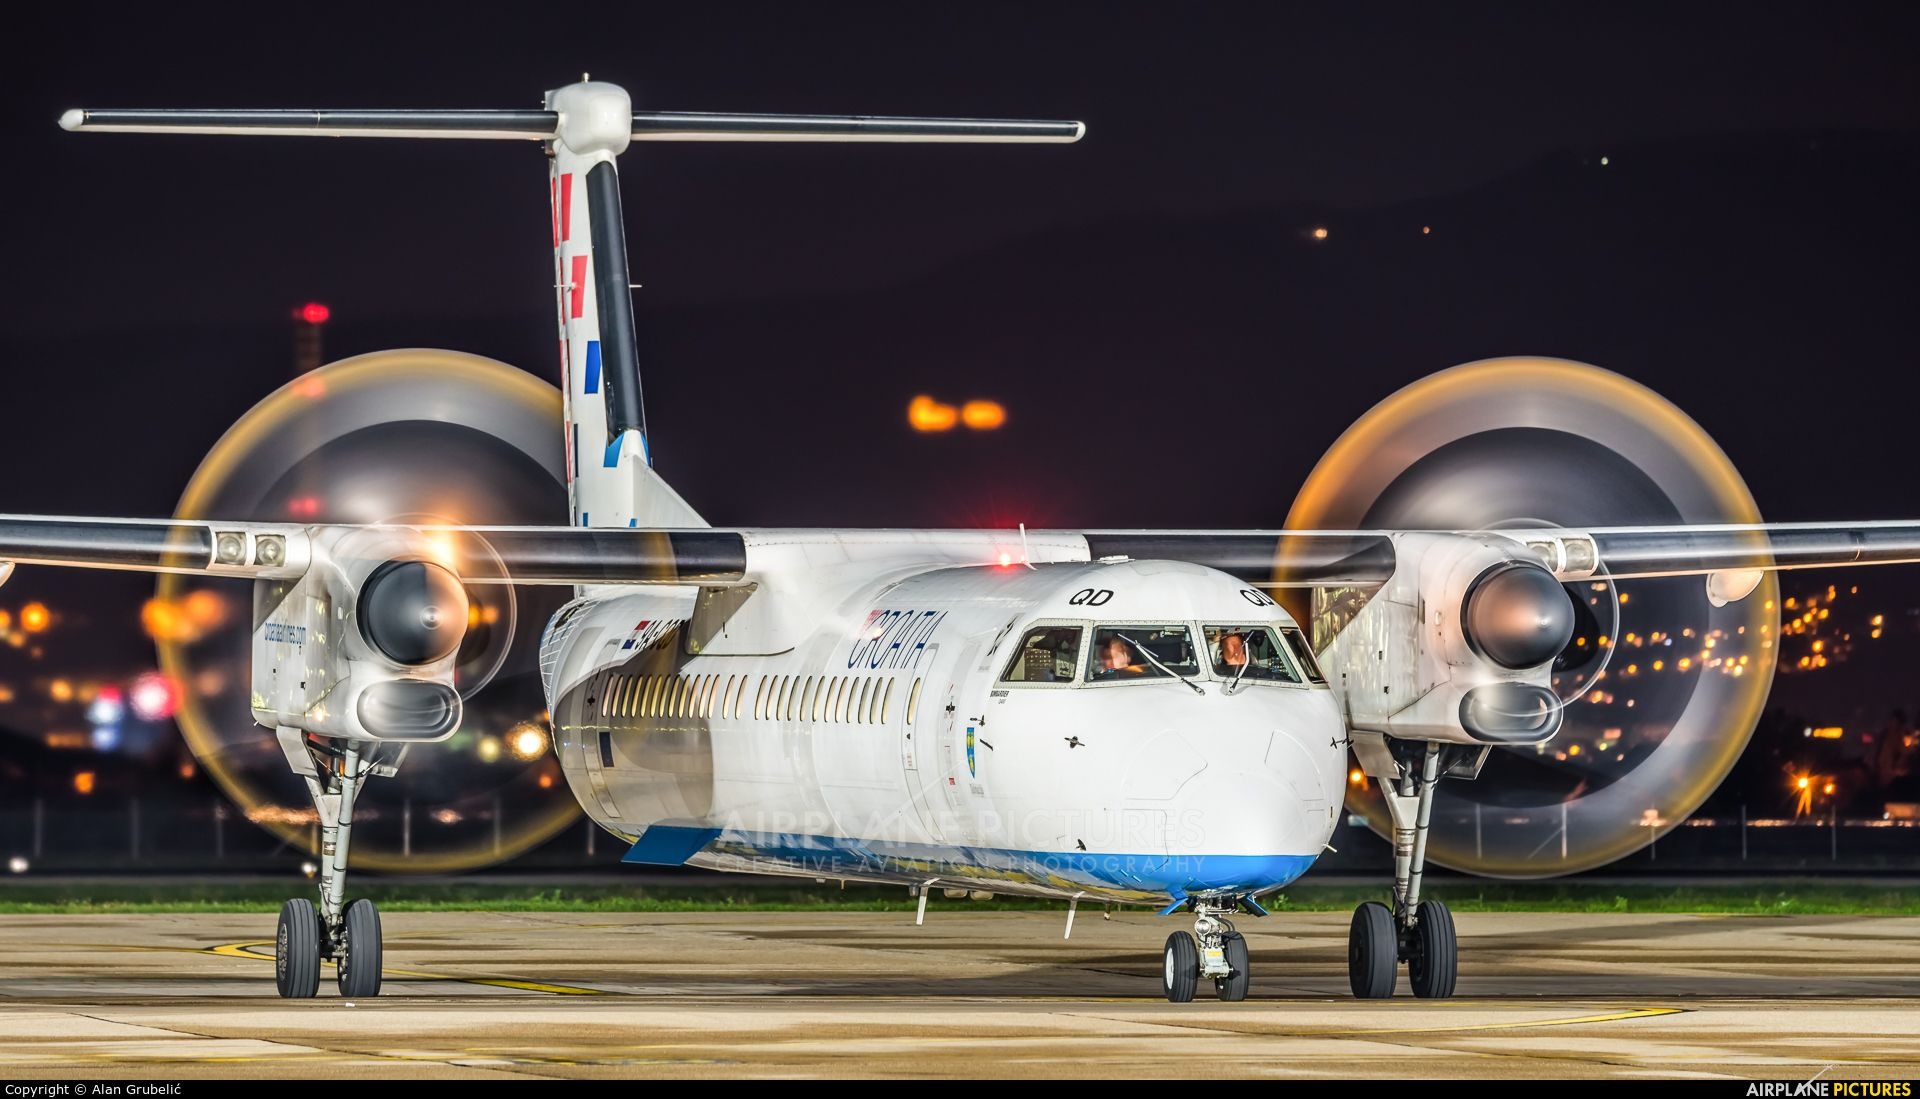 Croatia Airlines 9a Cqd Aircraft At Zagreb Photo Croatia Airlines Croatia Dhc